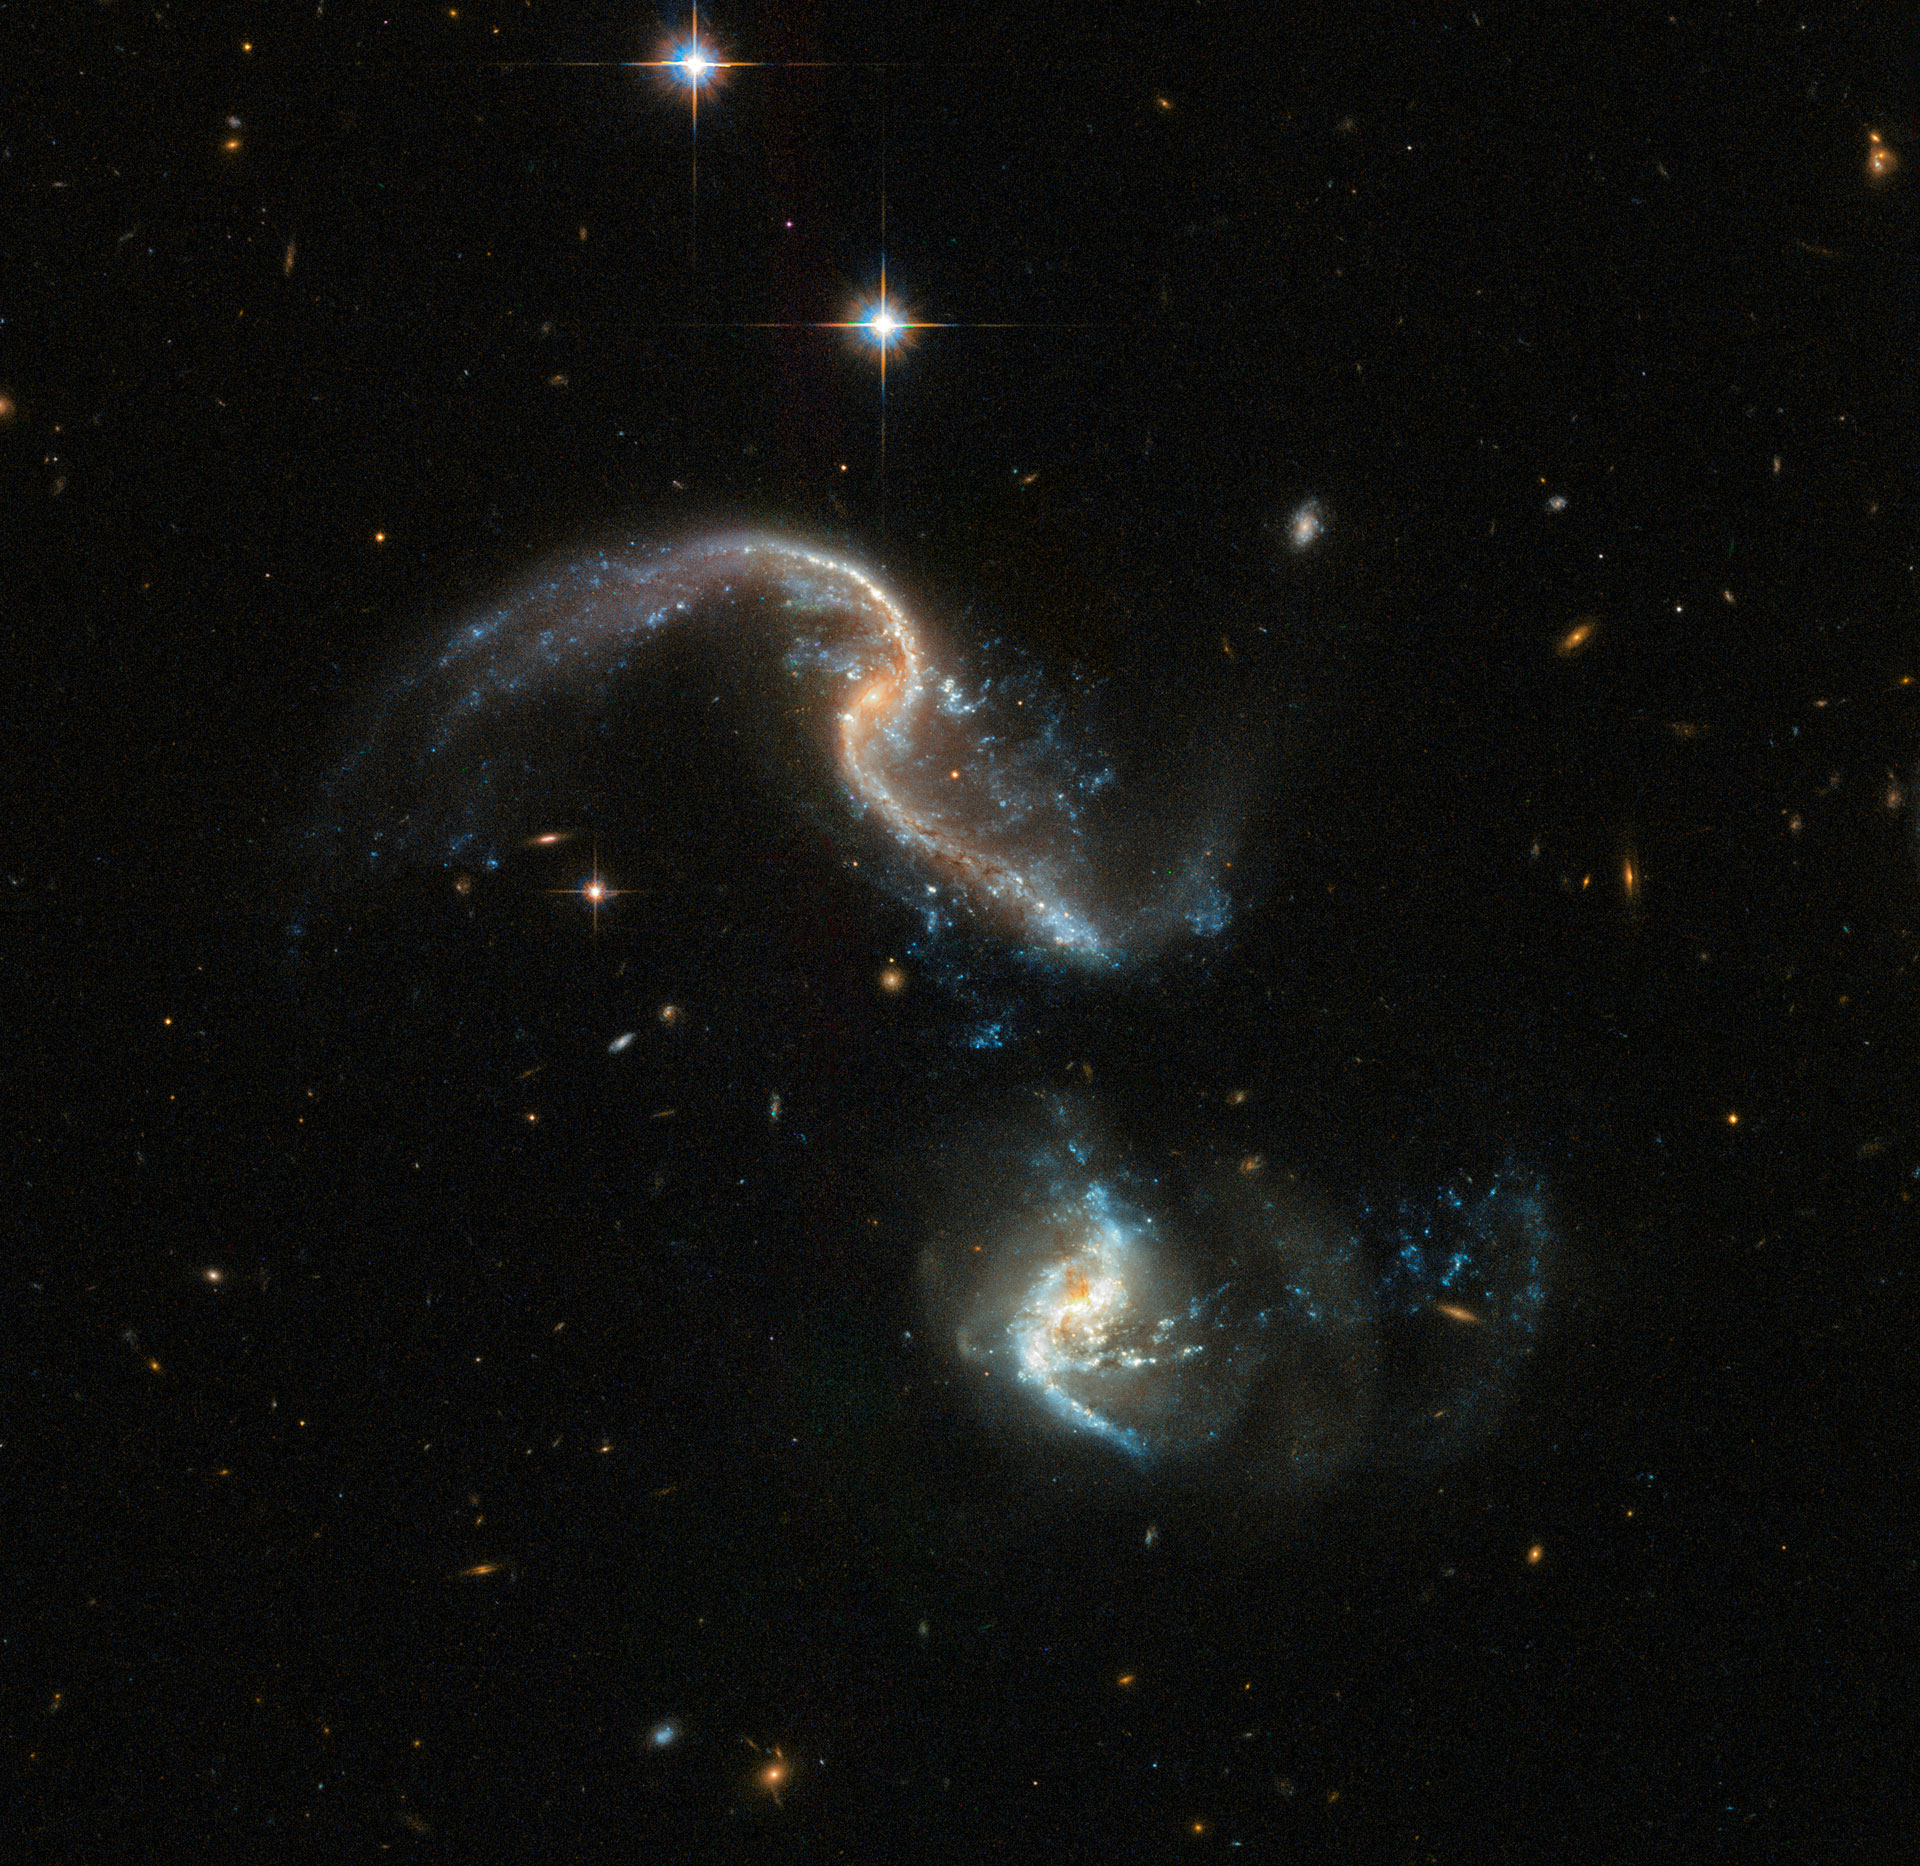 Hubble Telescope Captures Spectacular Image of a Galactic ...